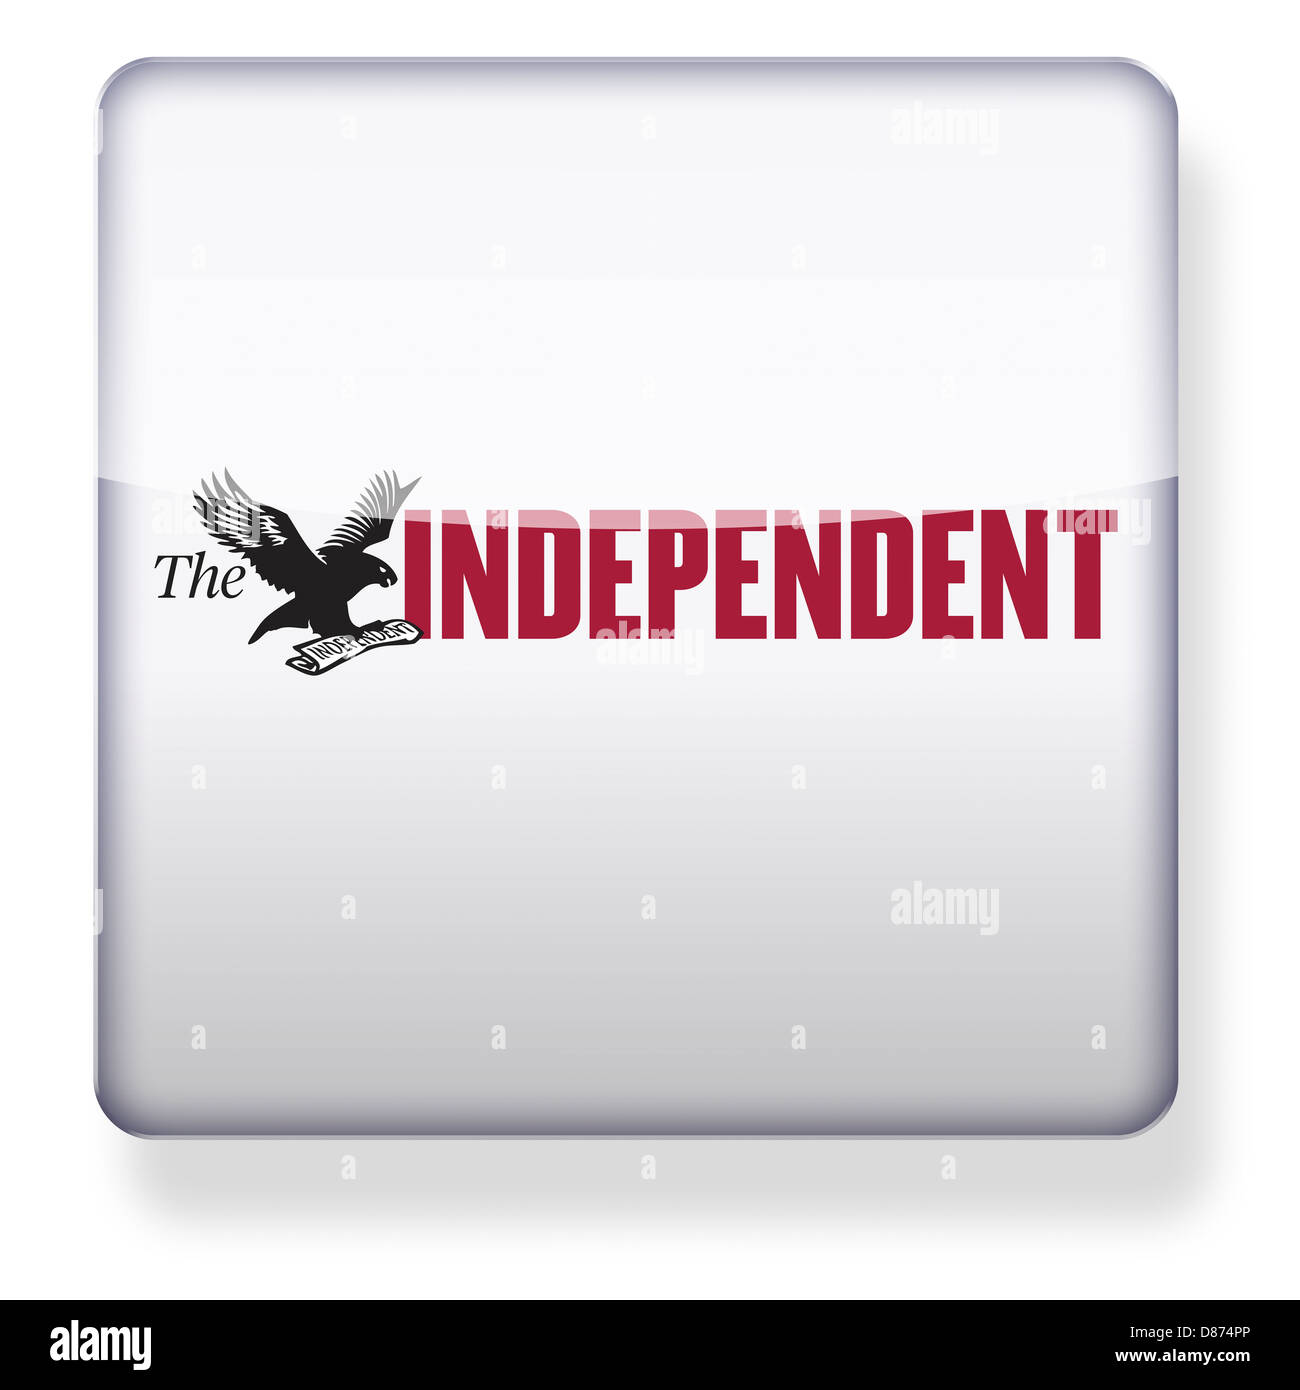 The Independent logo as an app icon. Clipping path included. - Stock Image